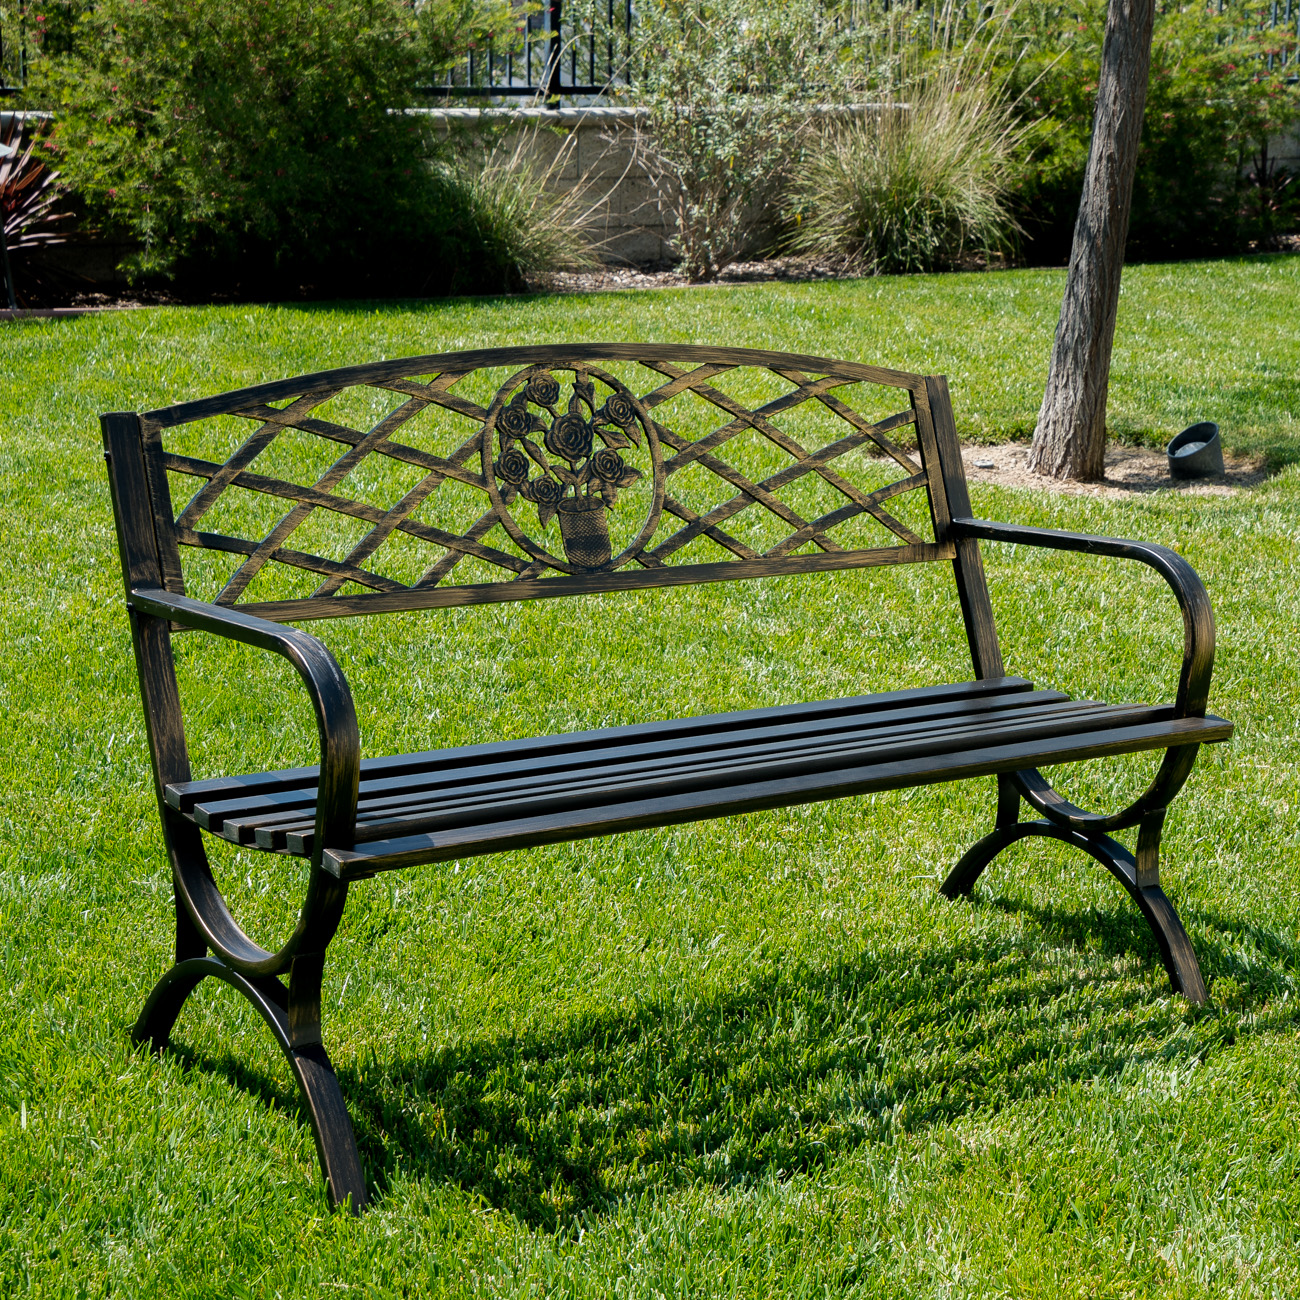 The use of metal garden chairs